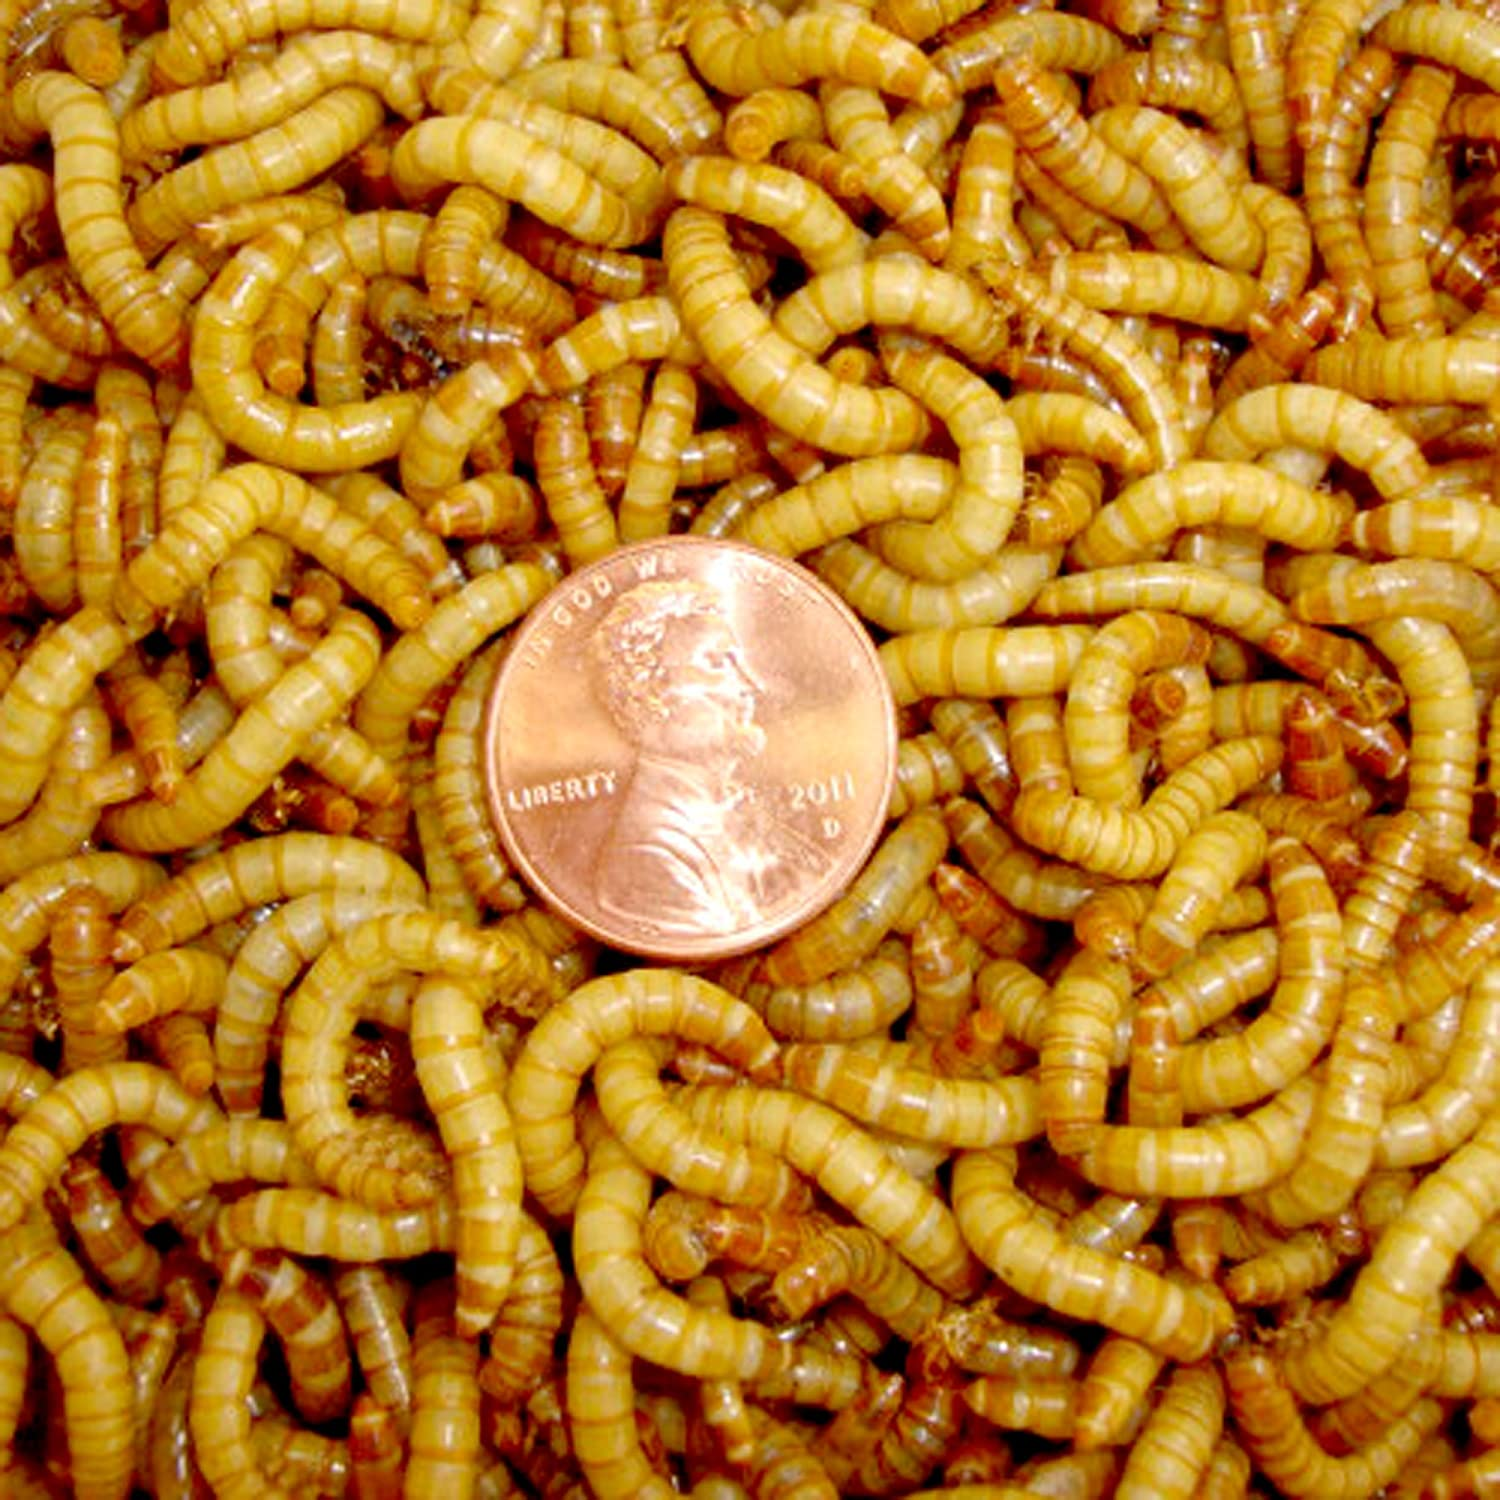 2100 Live Mealworms, Organically Grown By Bassett's Cricket Ranch 91we-nyTb4L